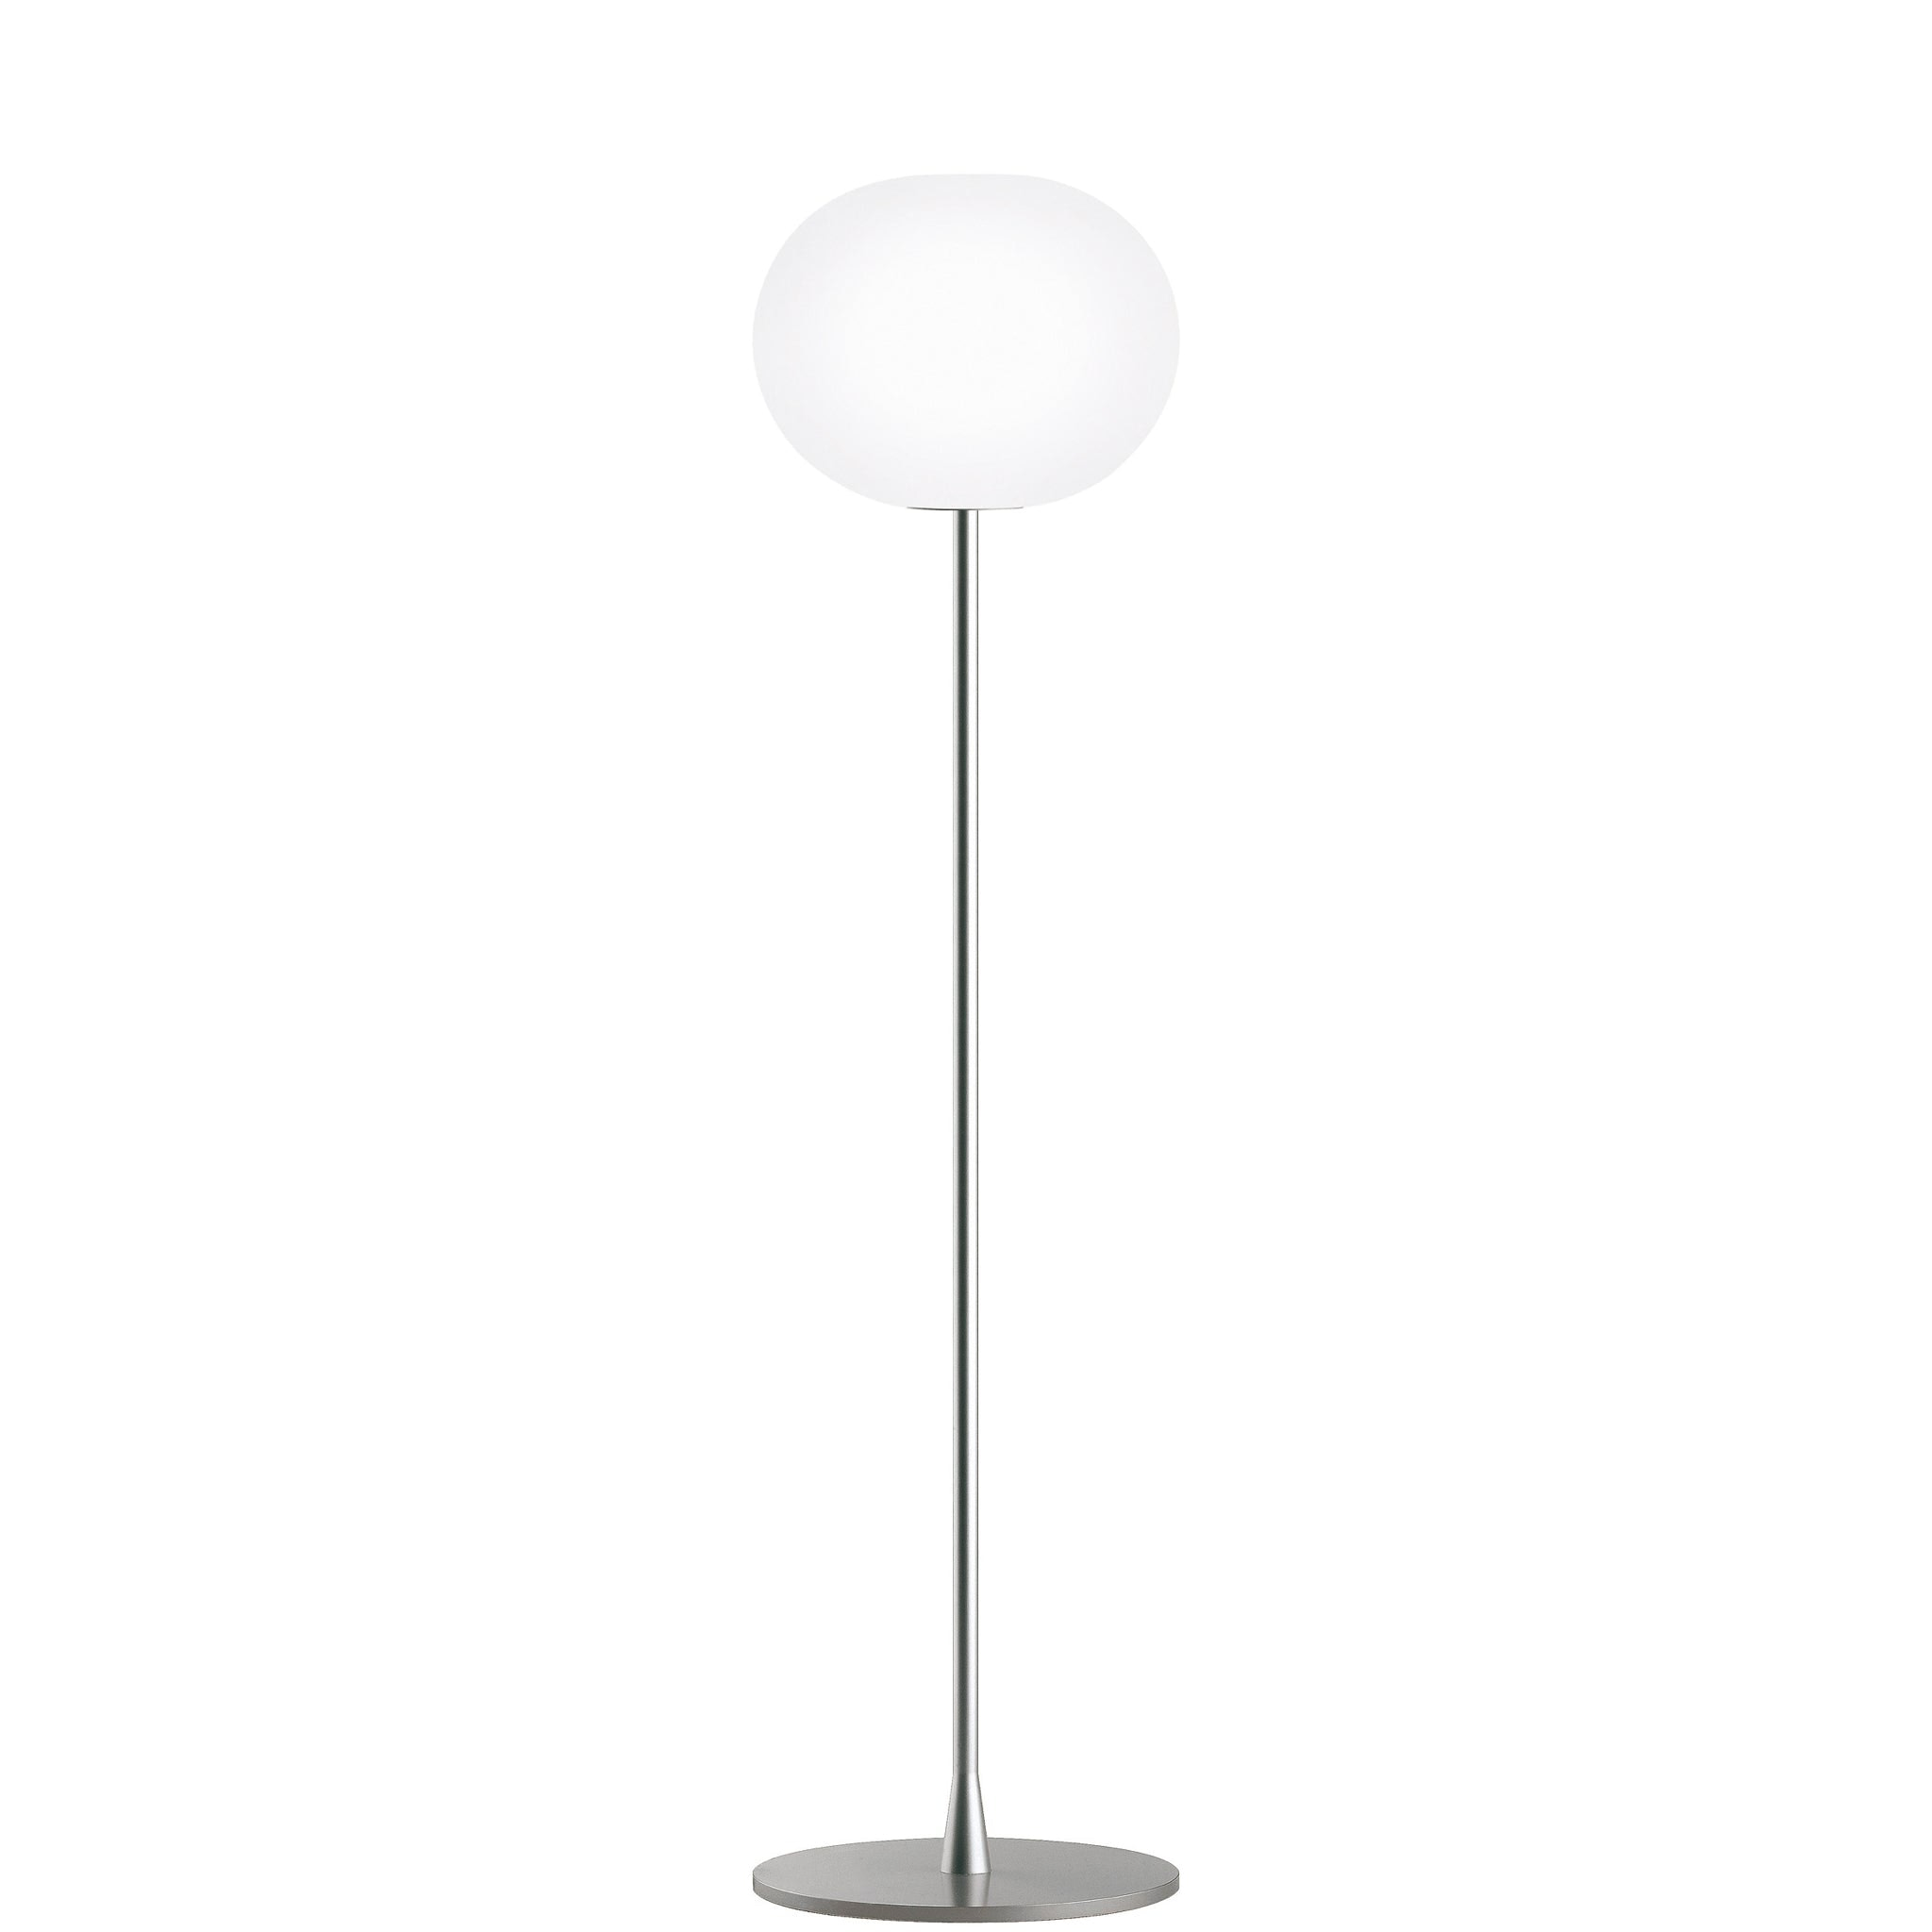 Glo Ball Floor Lamp by Flos